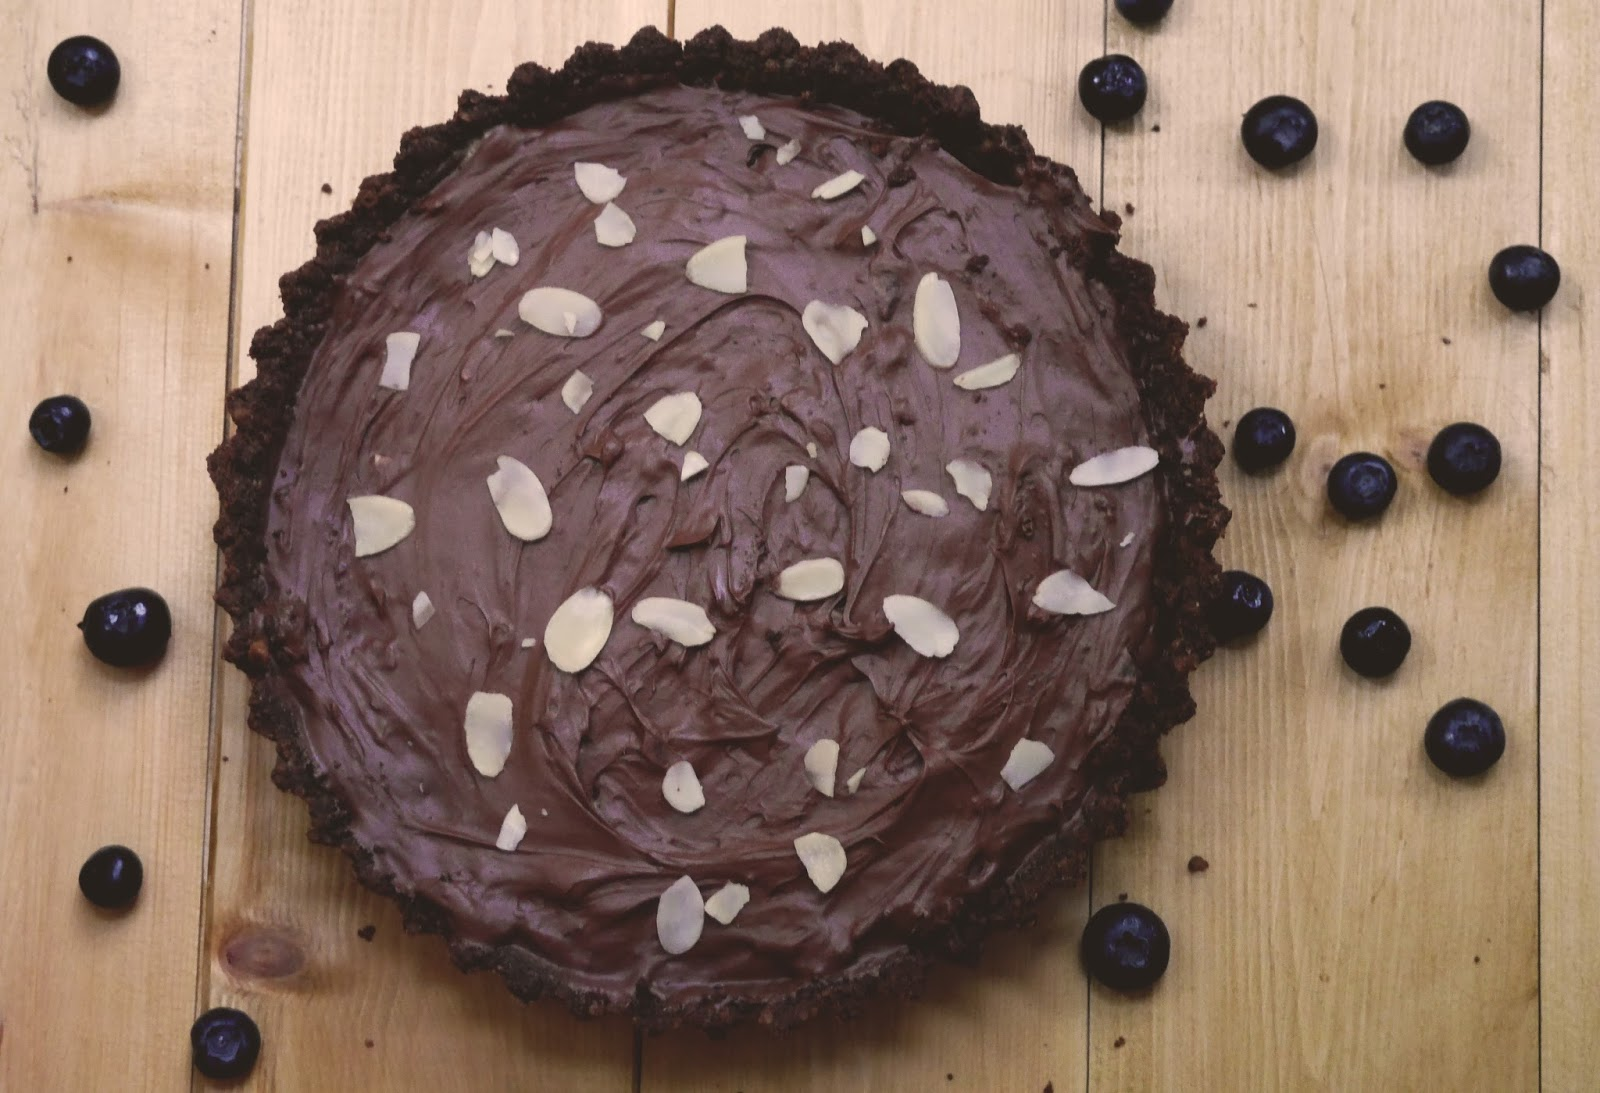 Lindt blueberry and dark chocolate tart